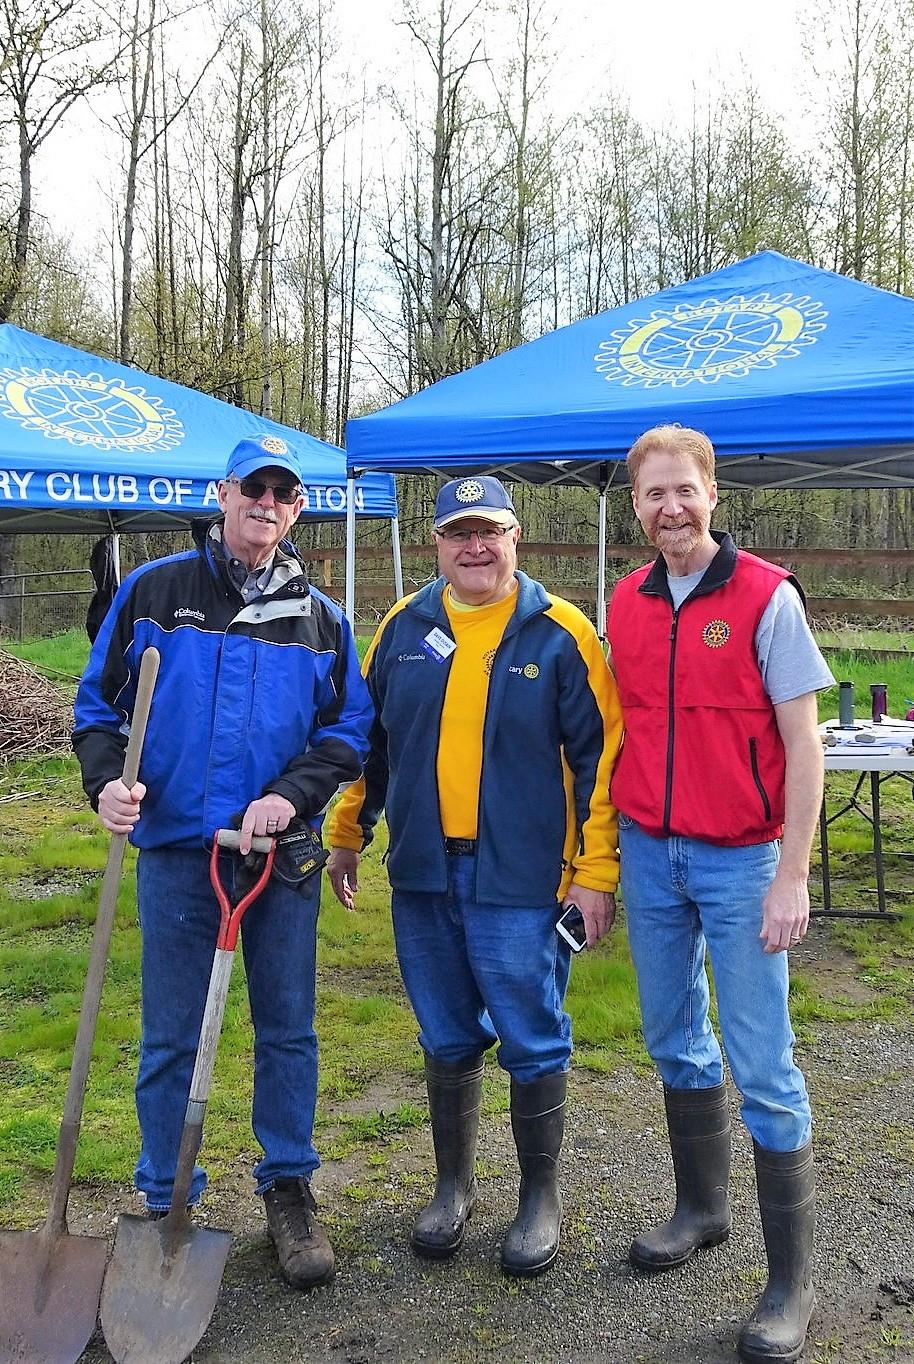 Dave With Terry and Charlie (Stanwood)